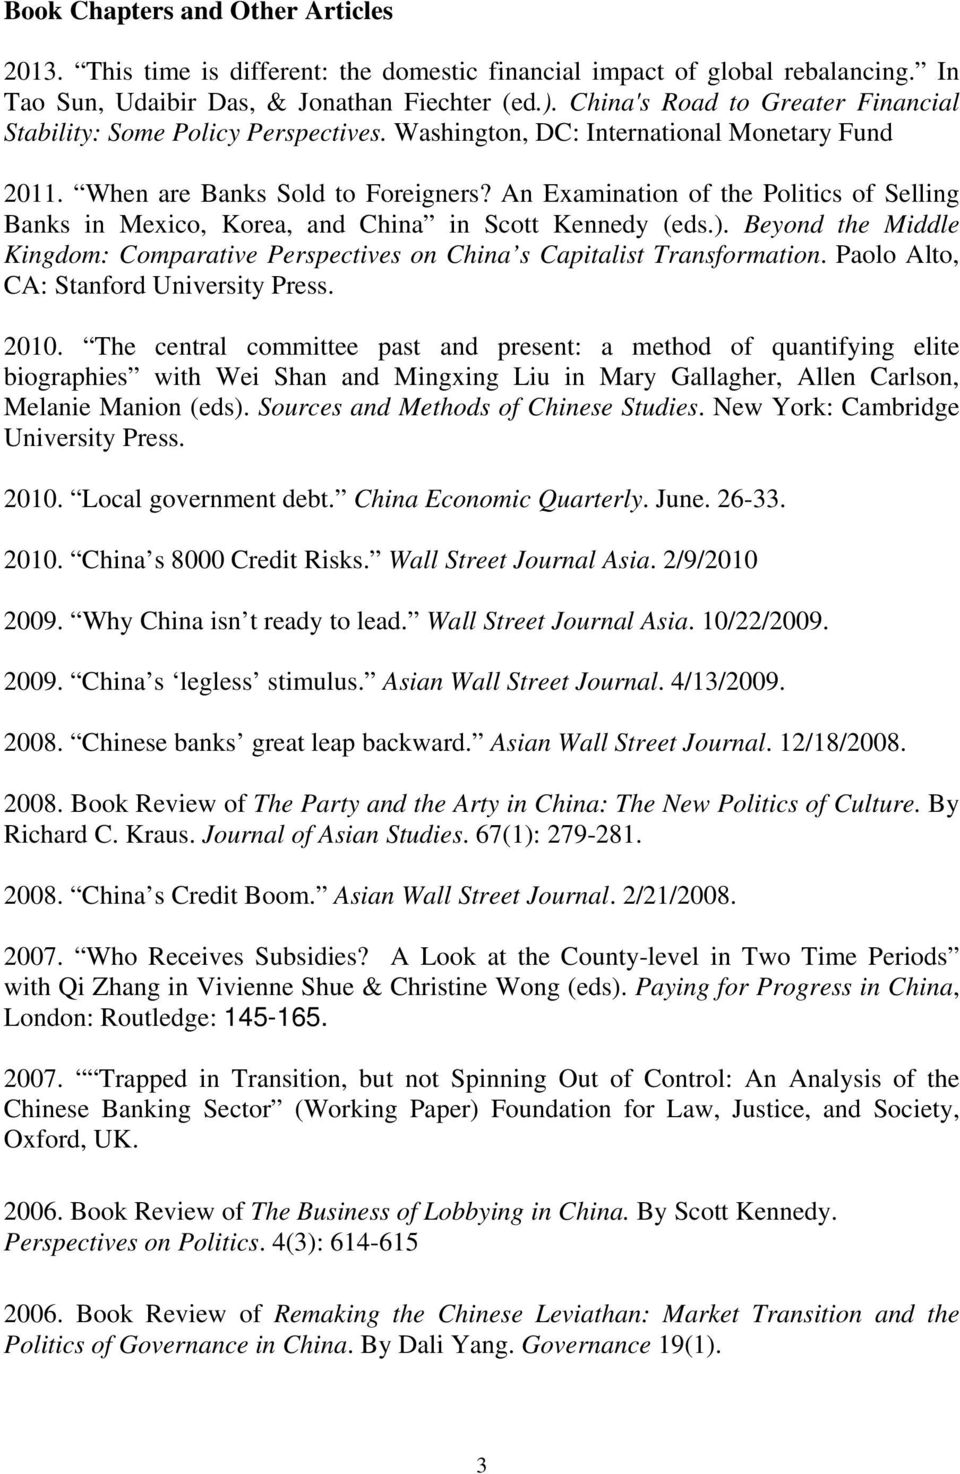 An Examination of the Politics of Selling Banks in Mexico, Korea, and China in Scott Kennedy (eds.). Beyond the Middle Kingdom: Comparative Perspectives on China s Capitalist Transformation.